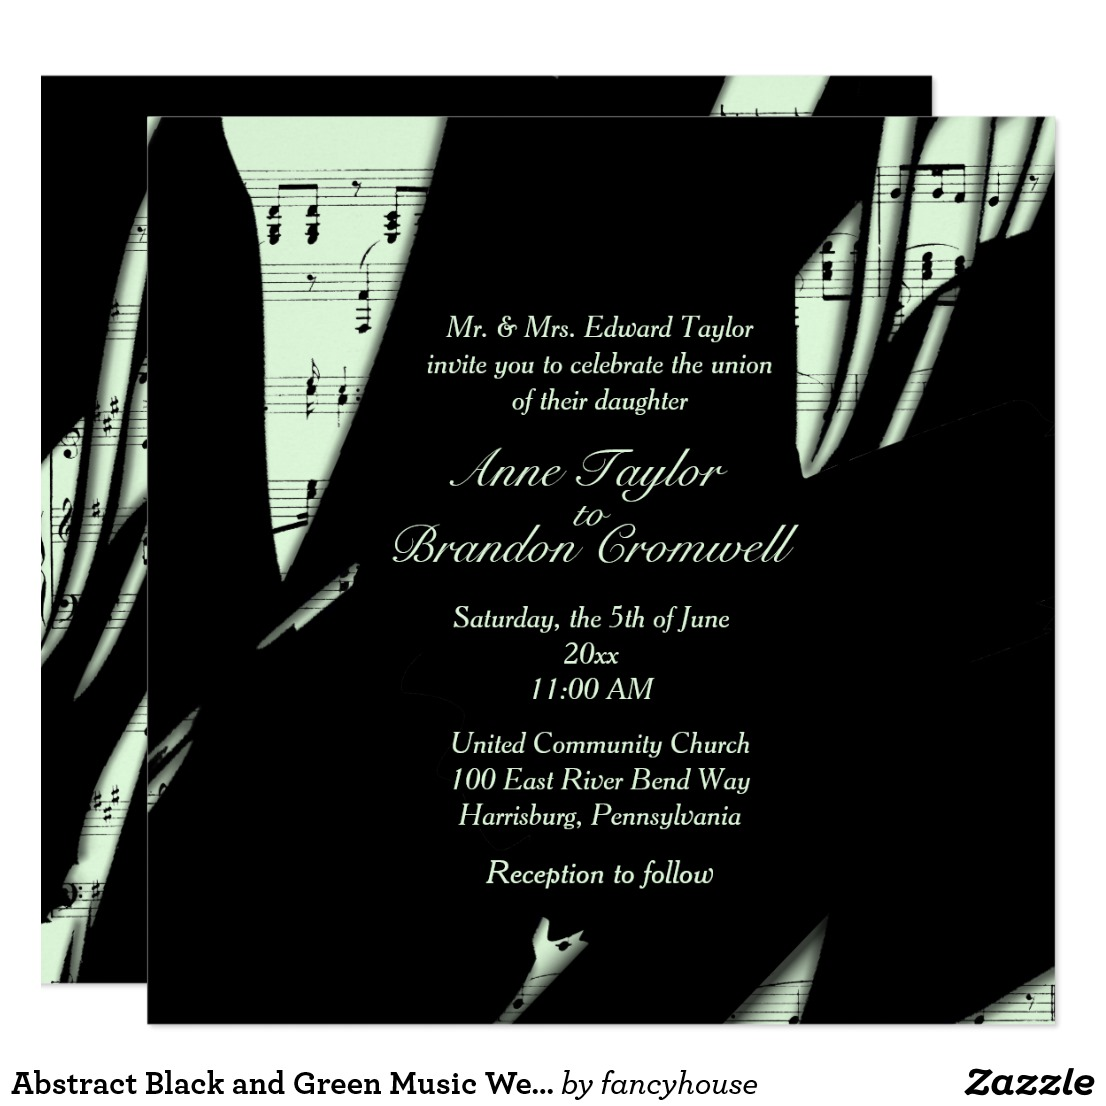 Abstract Black and Green Music Wedding Invitation